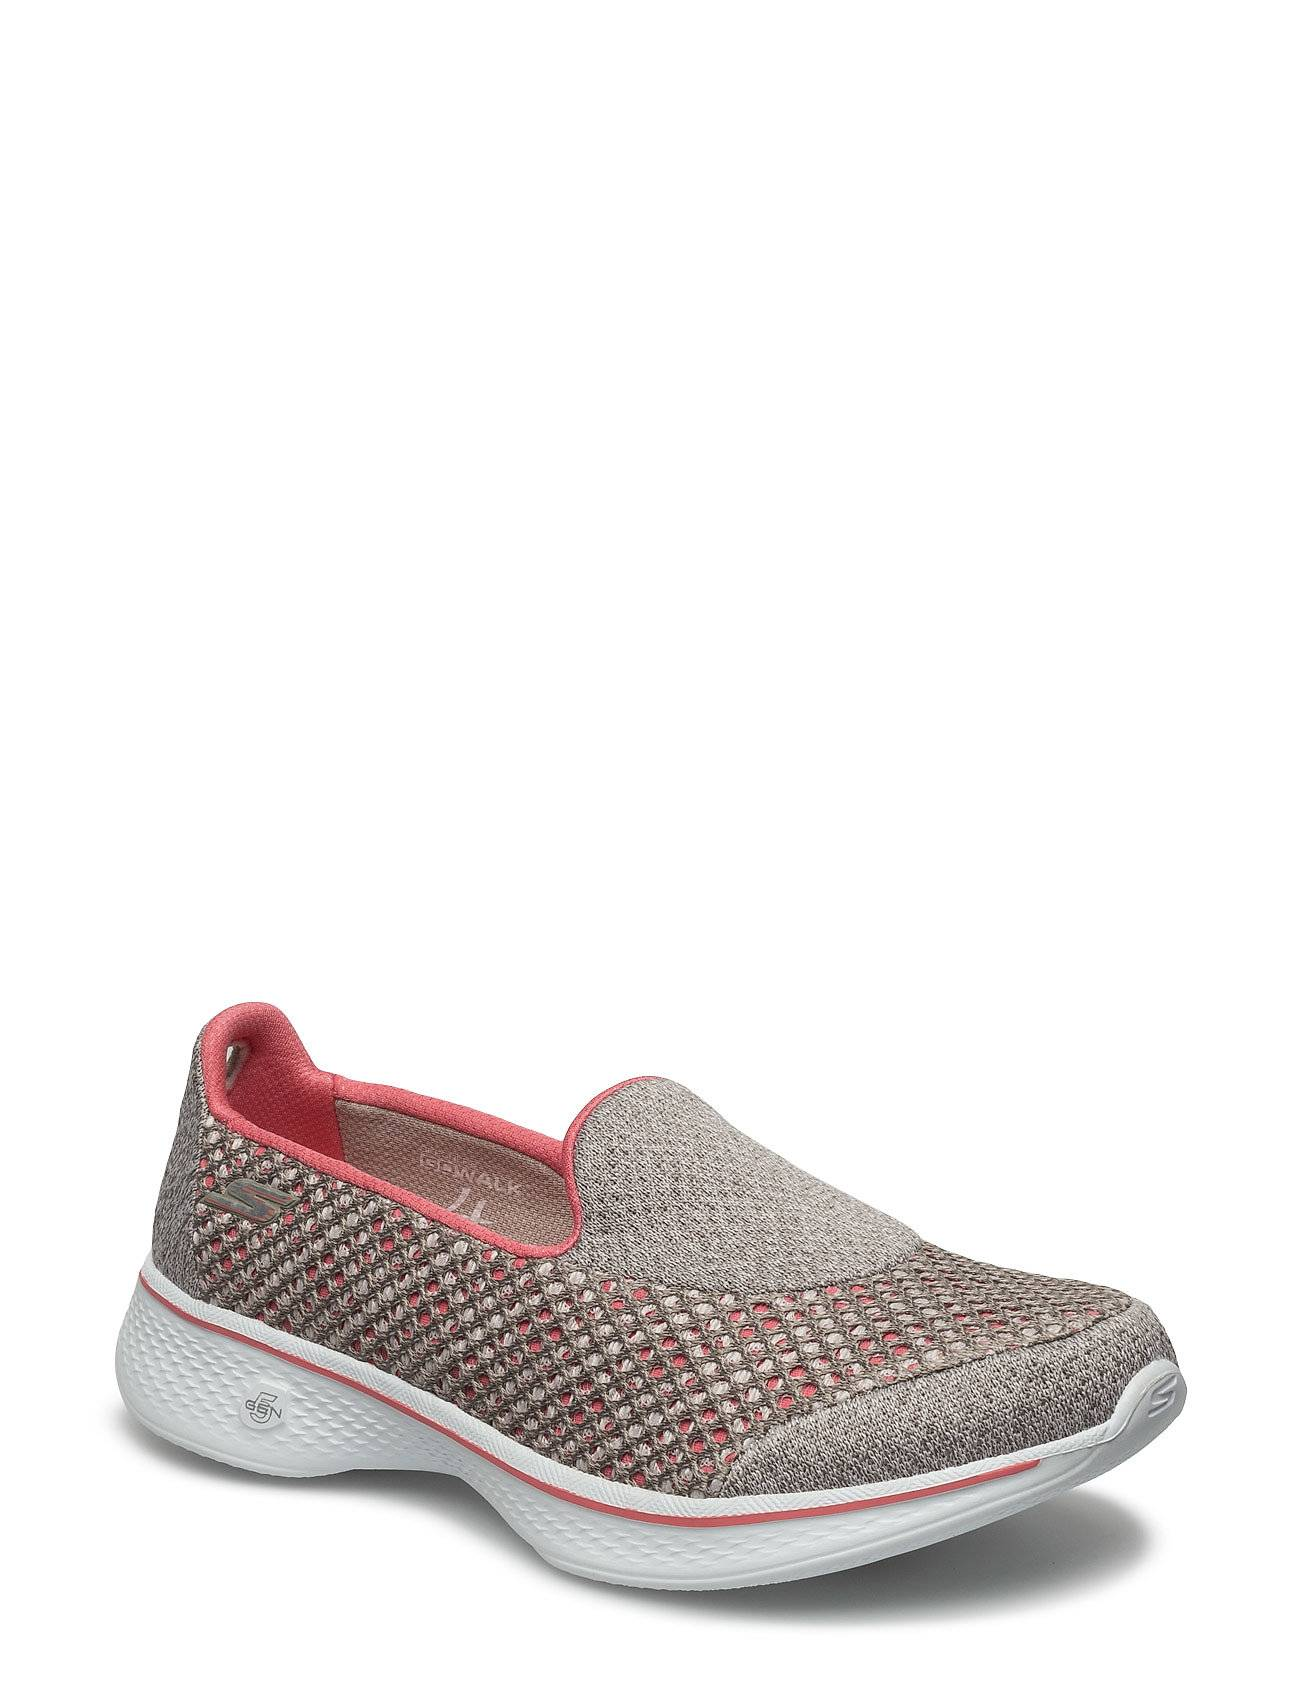 Skechers Womens Go Walk 4 - Kindle